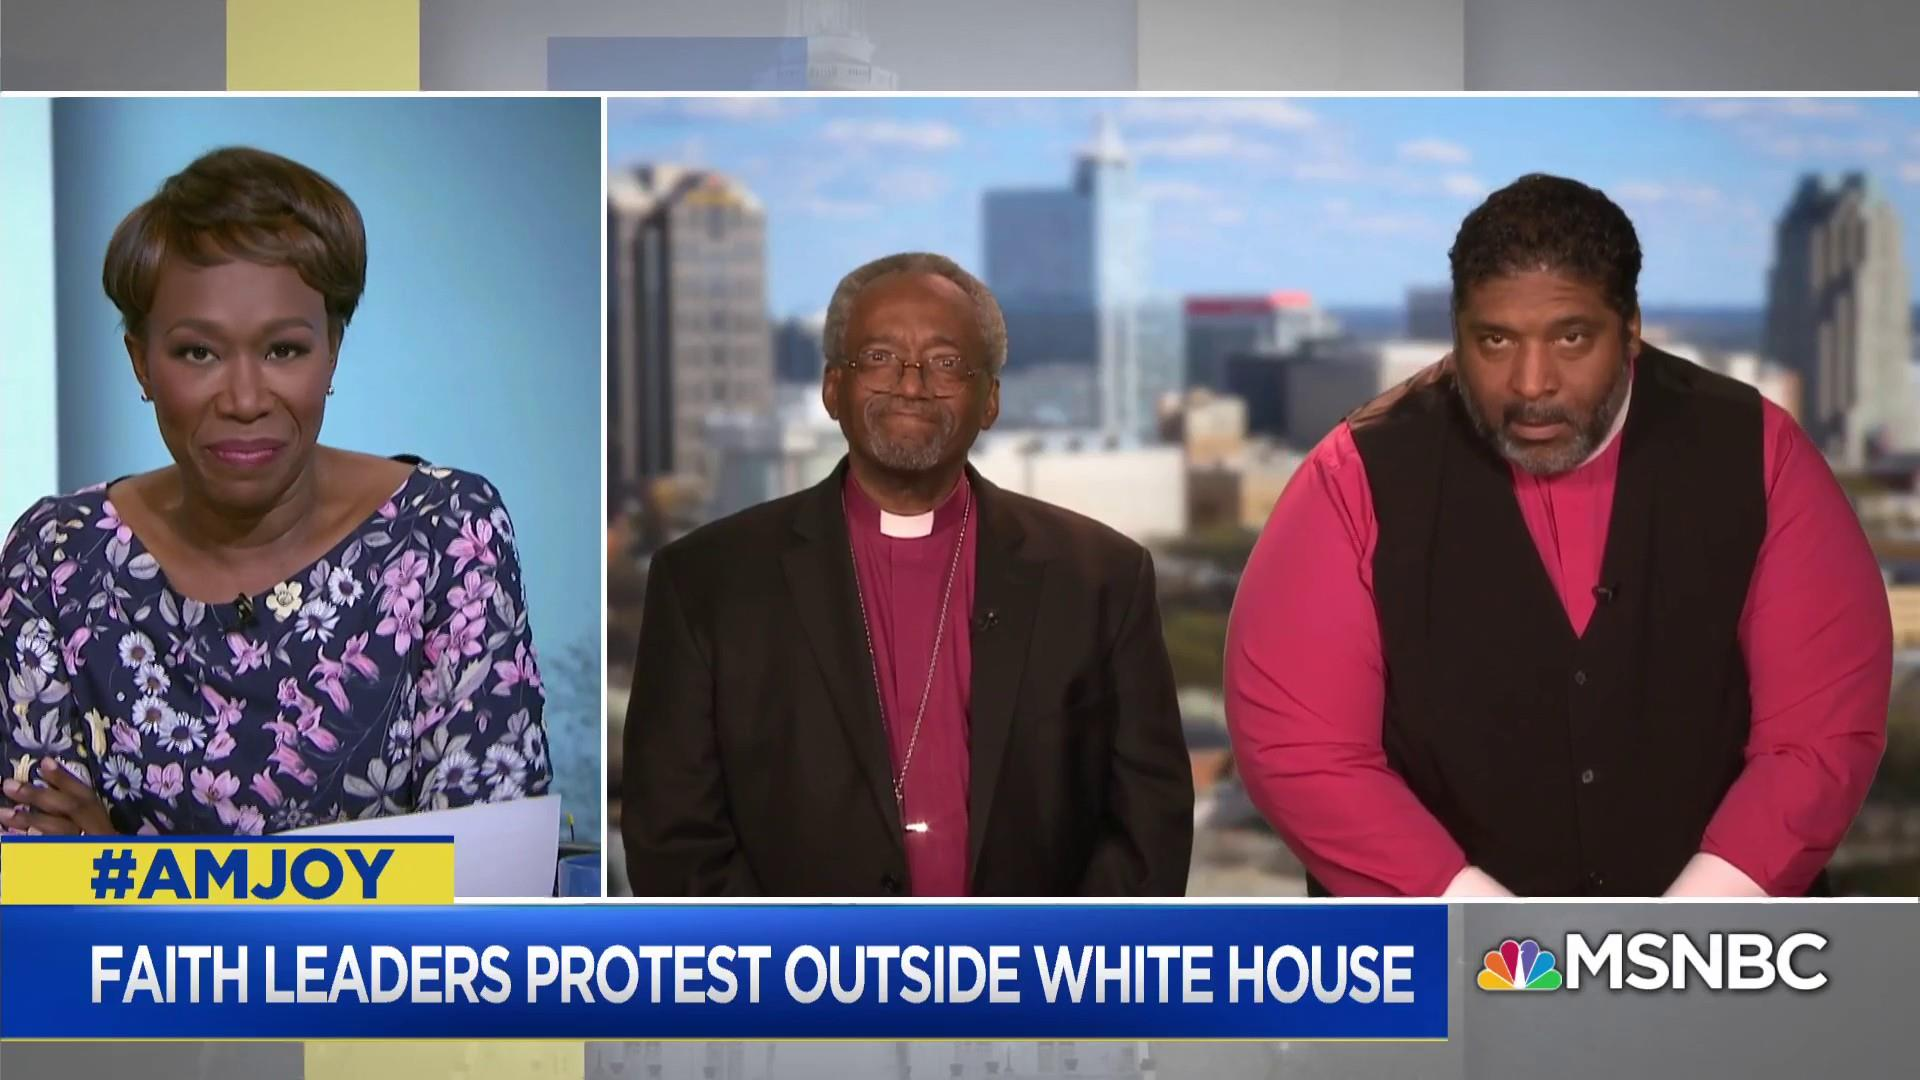 Bishop Curry: 'IIf we love our country we will follow the teaching of God, the ways of love'